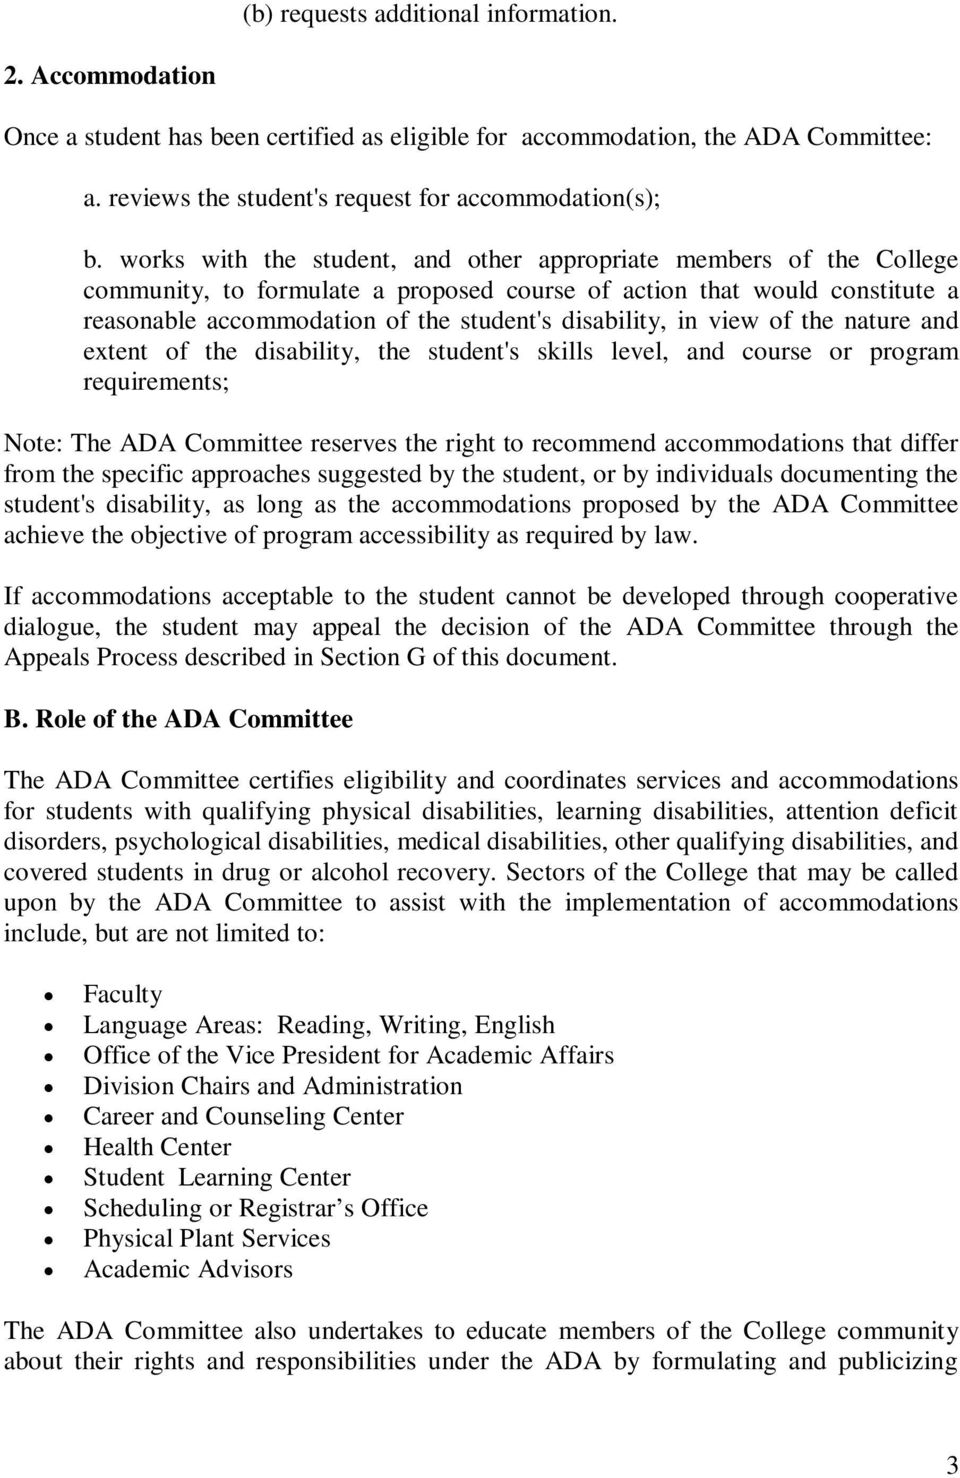 in view of the nature and extent of the disability, the student's skills level, and course or program requirements; Note: The ADA Committee reserves the right to recommend accommodations that differ